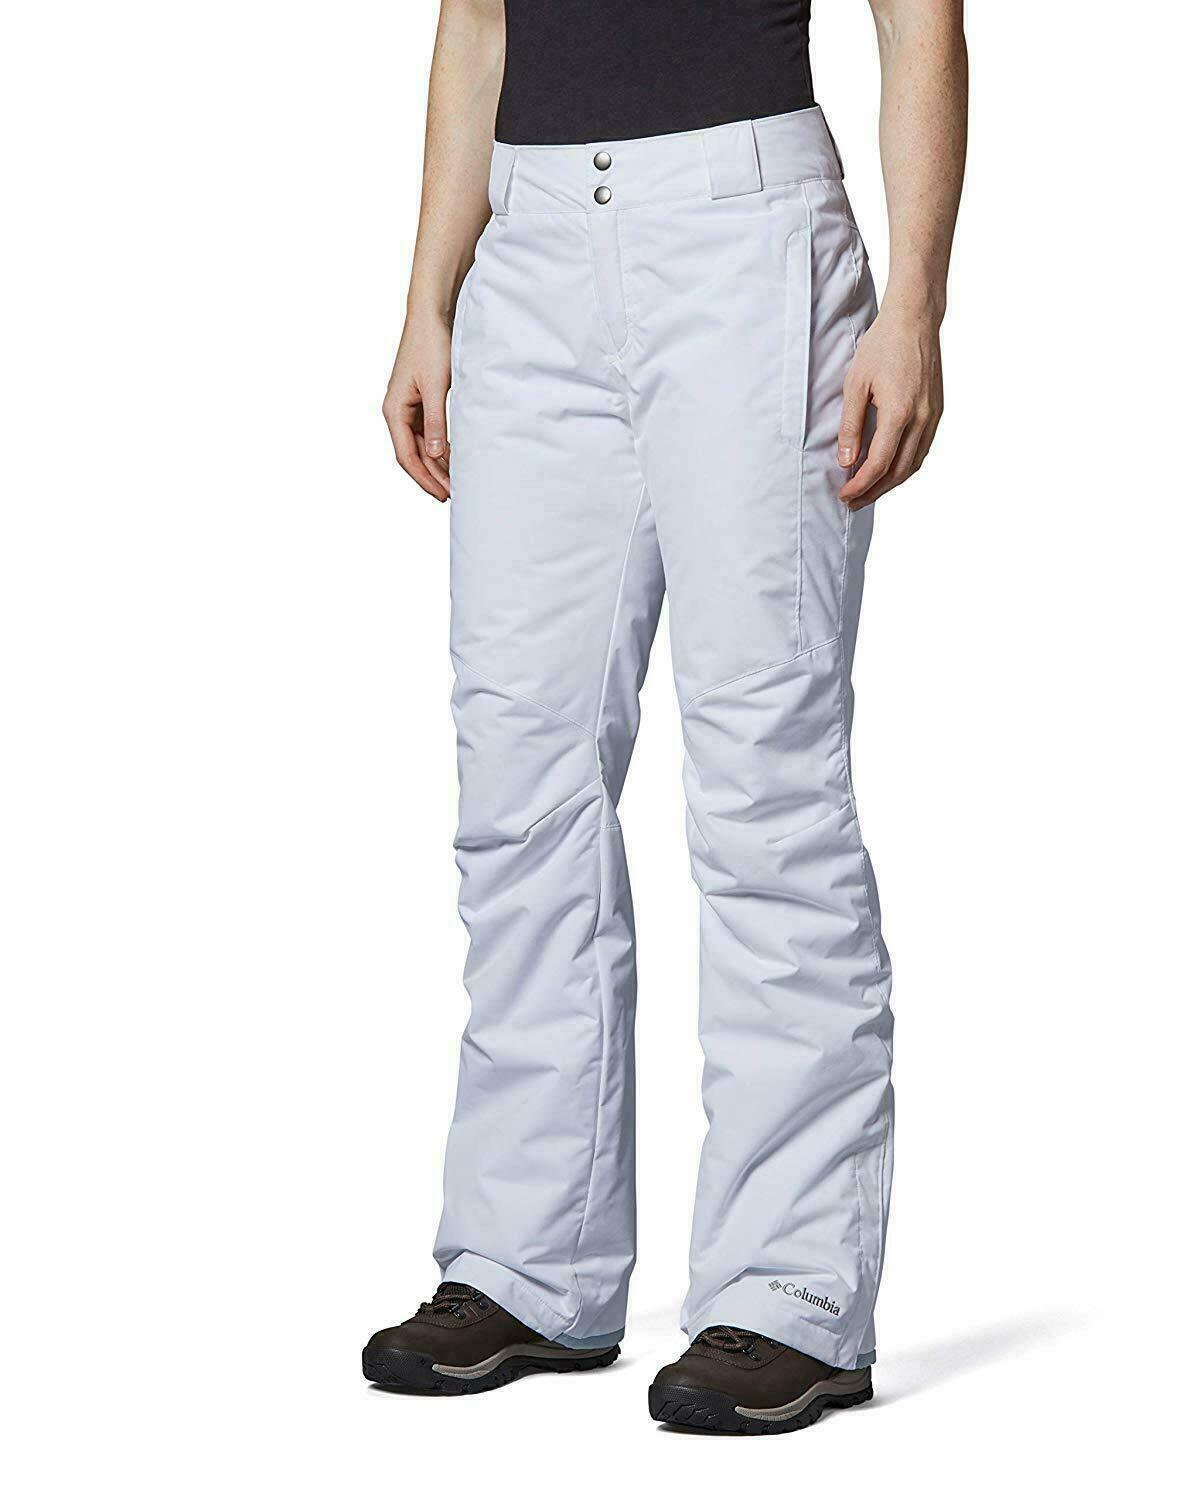 Columbia Bugaboo II Pants, XSmall Regular, White